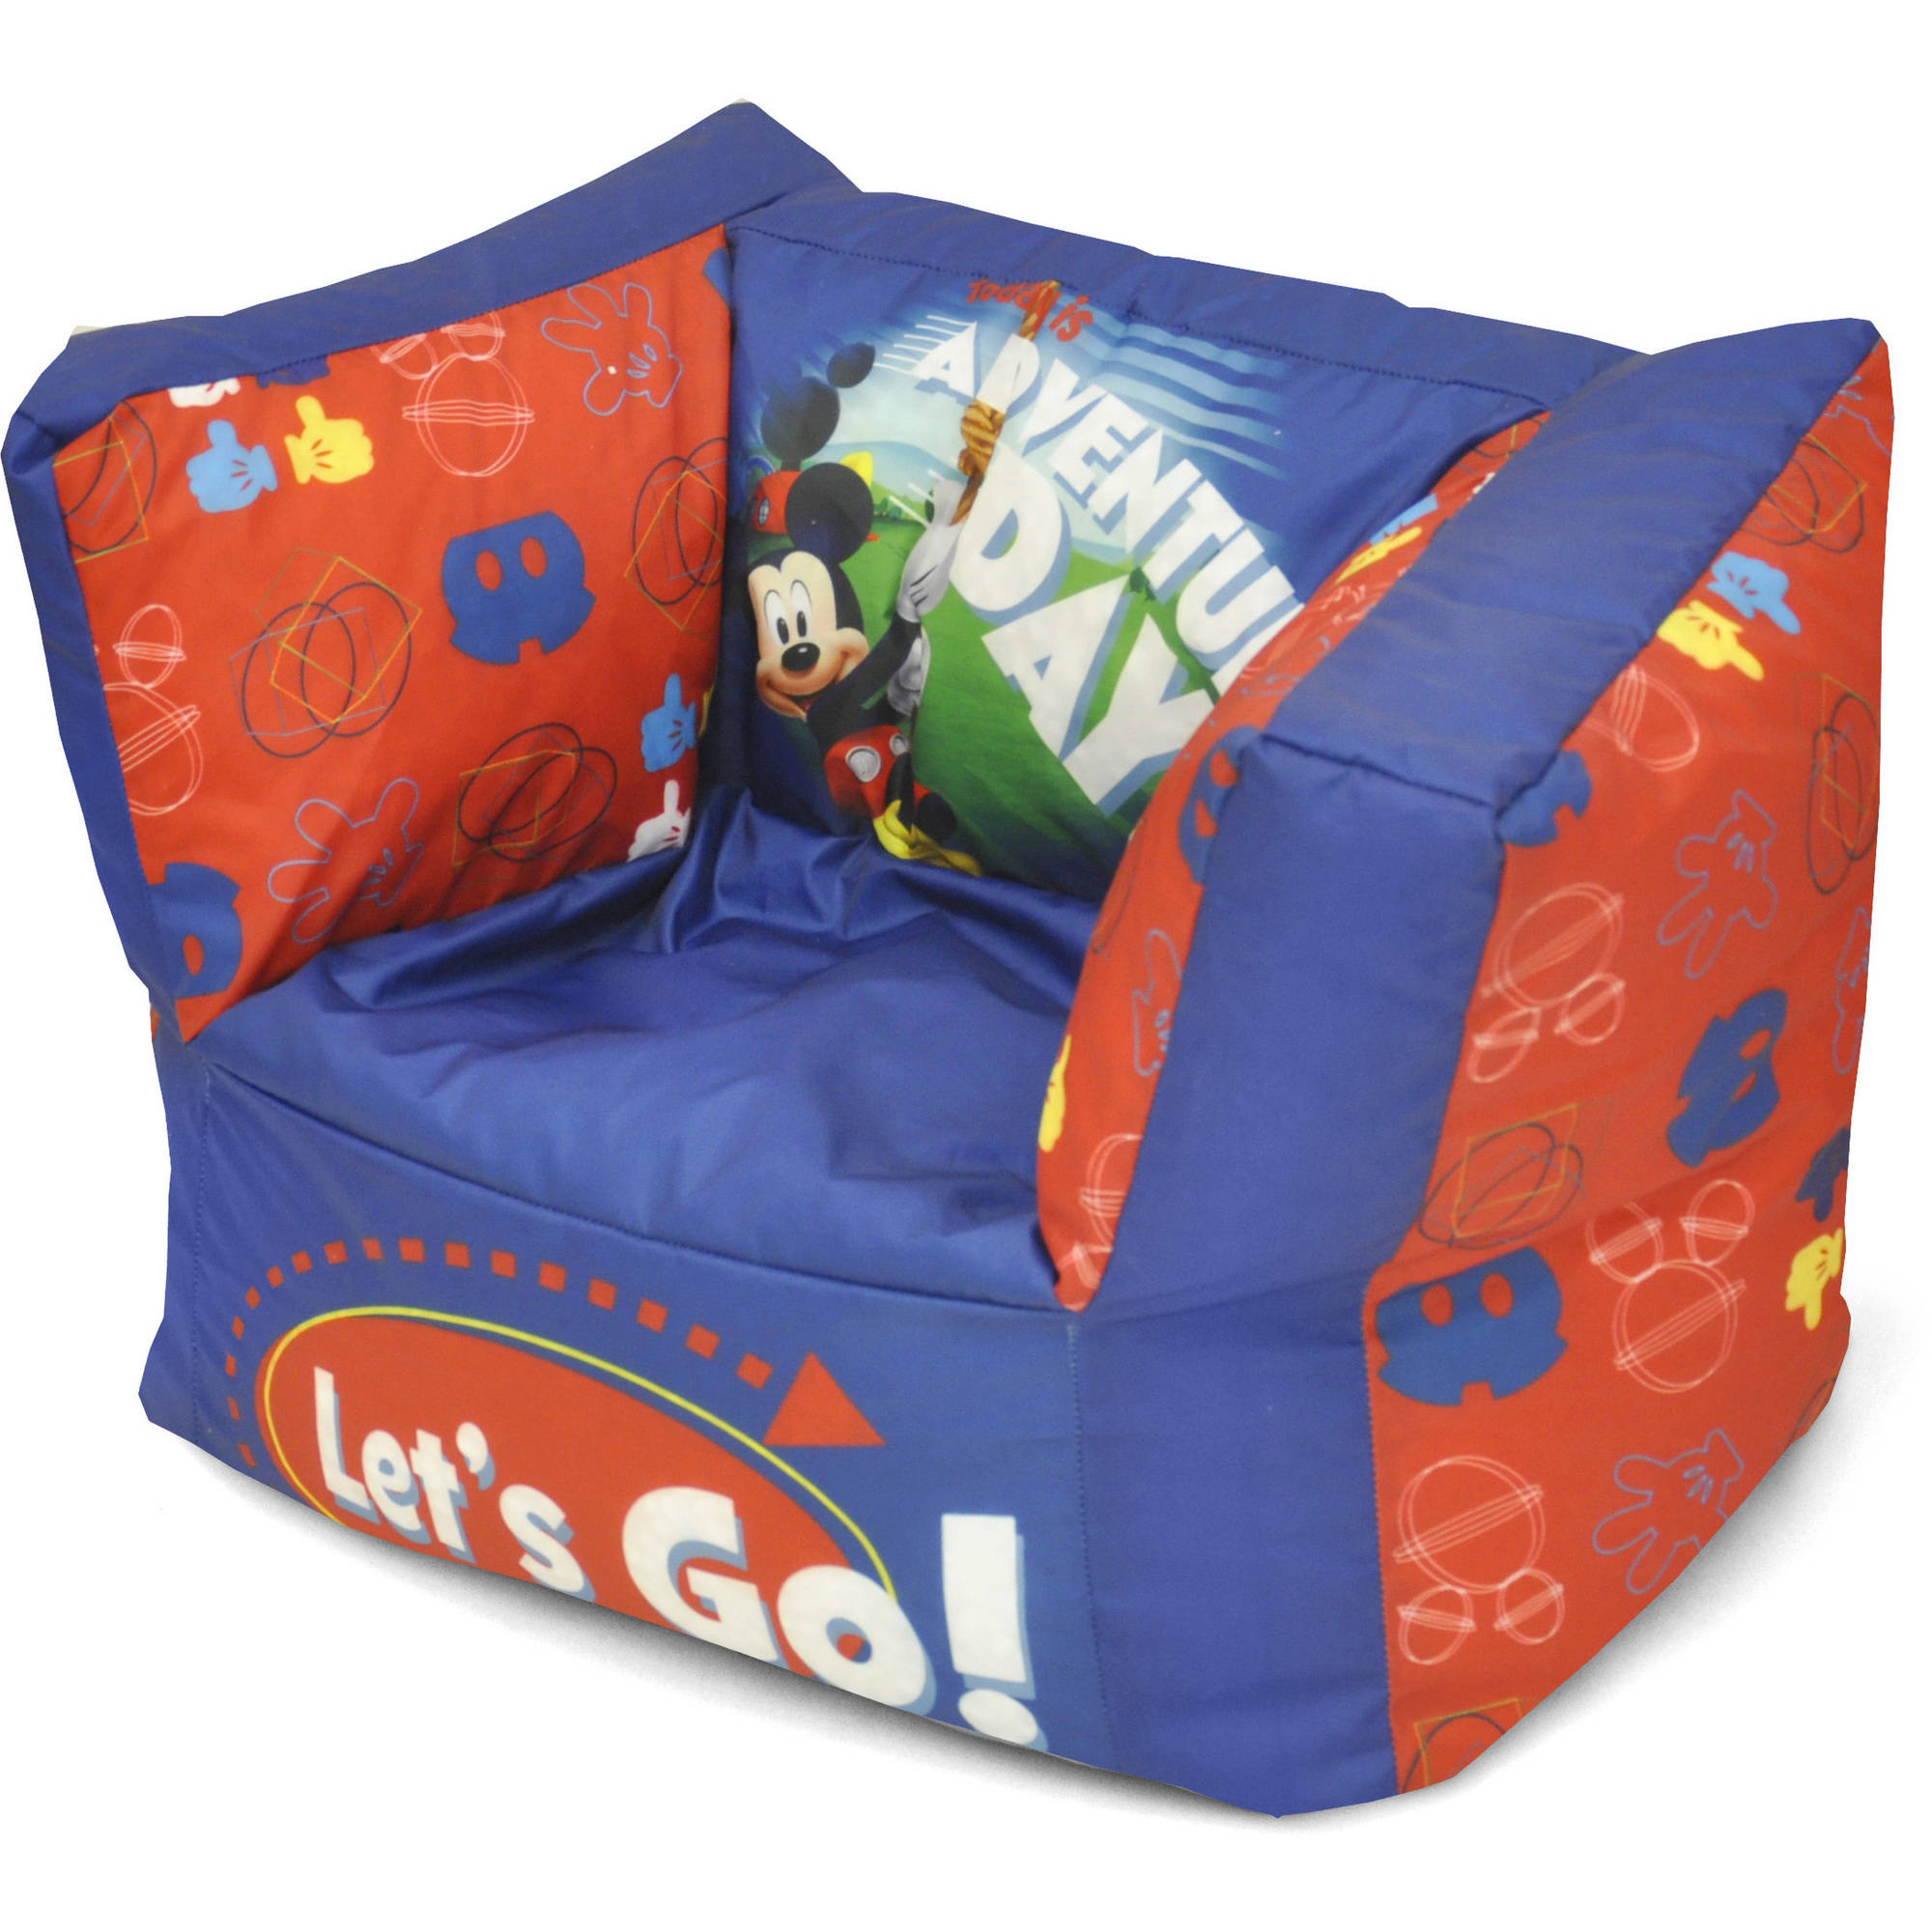 Mickey Mouse Square Bean Bag Chair - Walmart.com